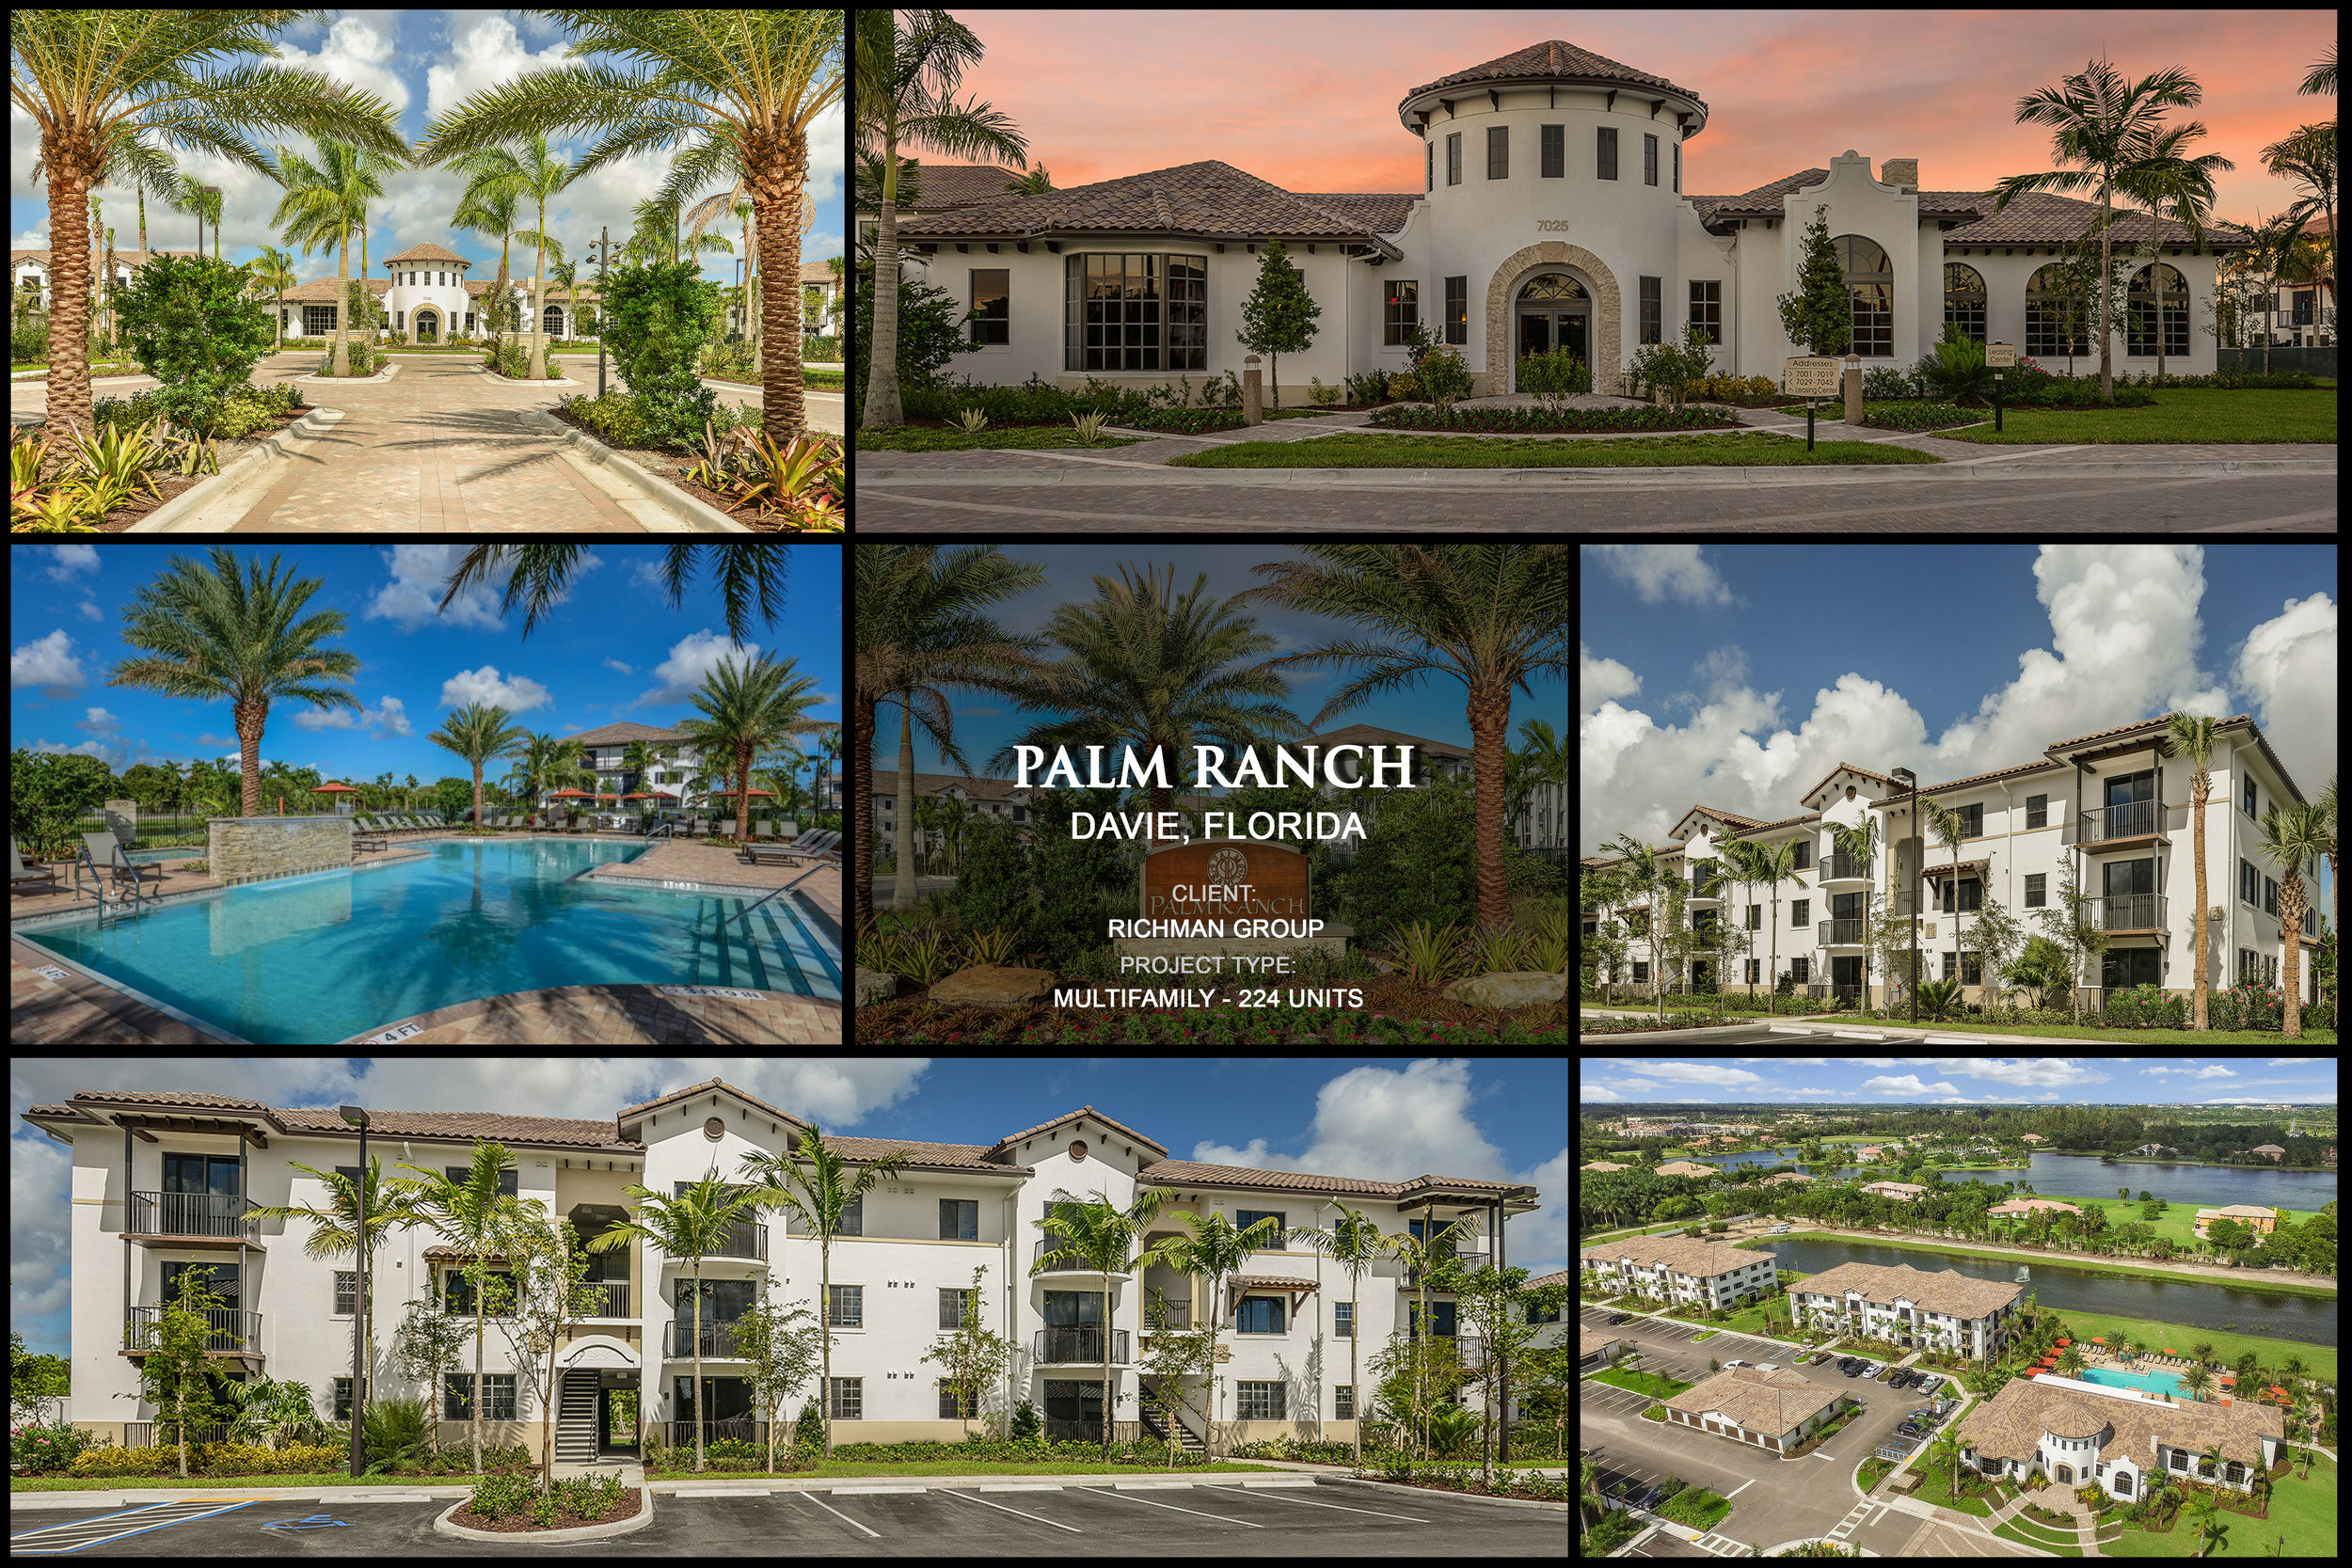 Palm Ranch